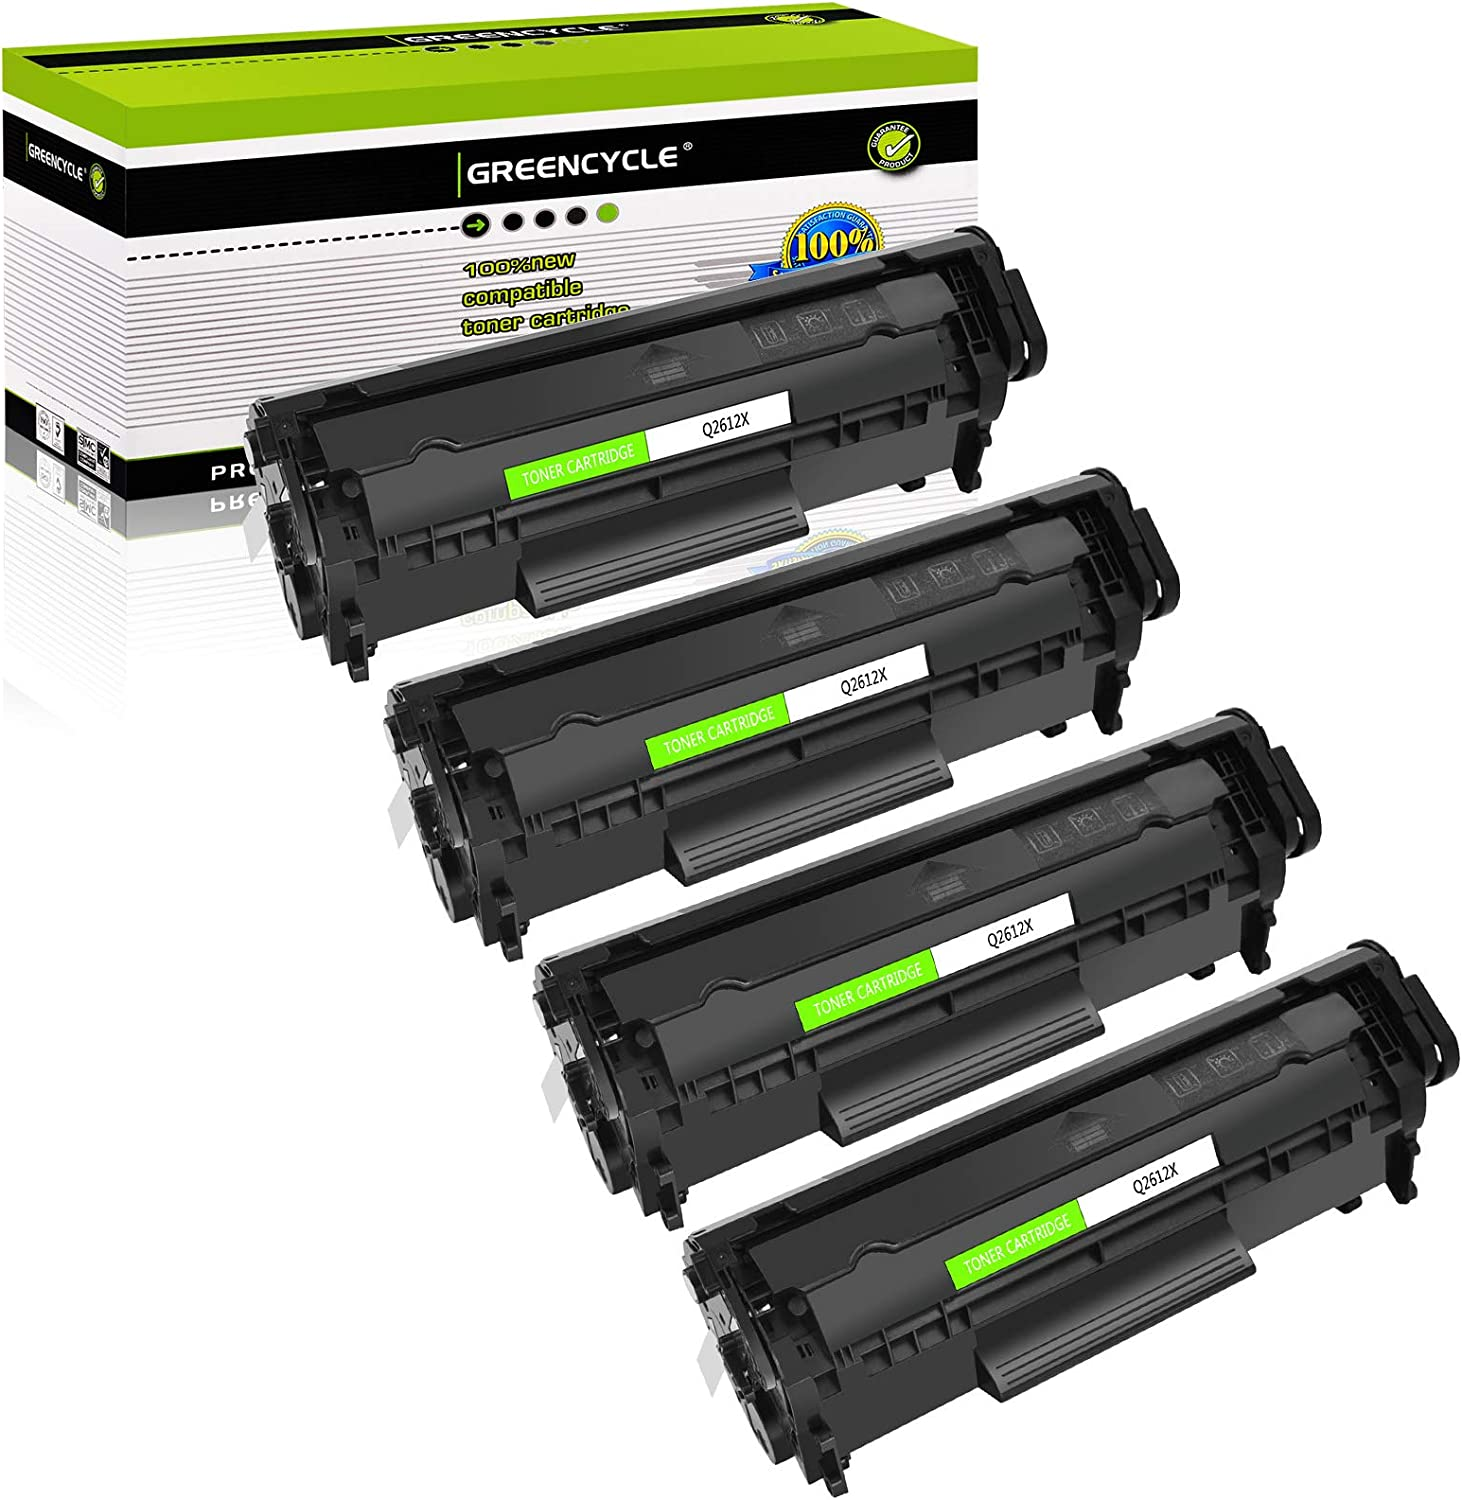 GREENCYCLE Compatible Toner Cartridge Replacement for HP 12X Q2612X Use for Laserjet 1020 1012 1022 1010 1018 1022n 3015 3030 3050 3052 3055 M1005 M1319F Printer (High Yield Black, 4-Pack)